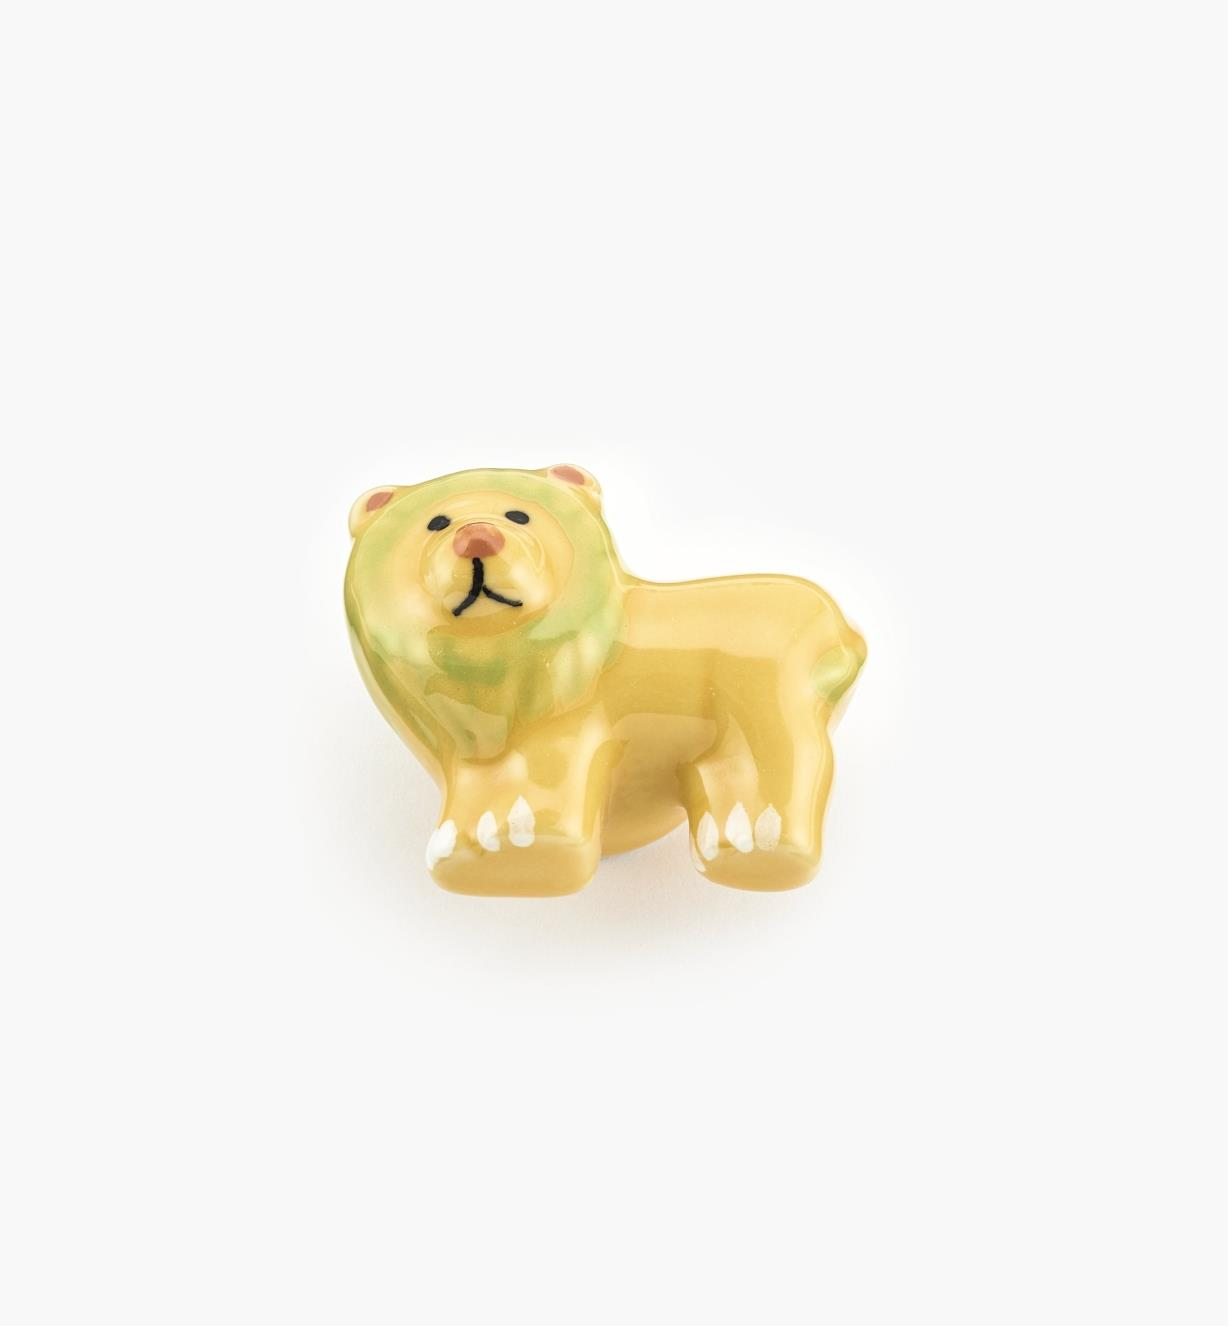 "00W5326 - 1 7/8"" x 1 1/2"" Lion Ceramic Knob, each"